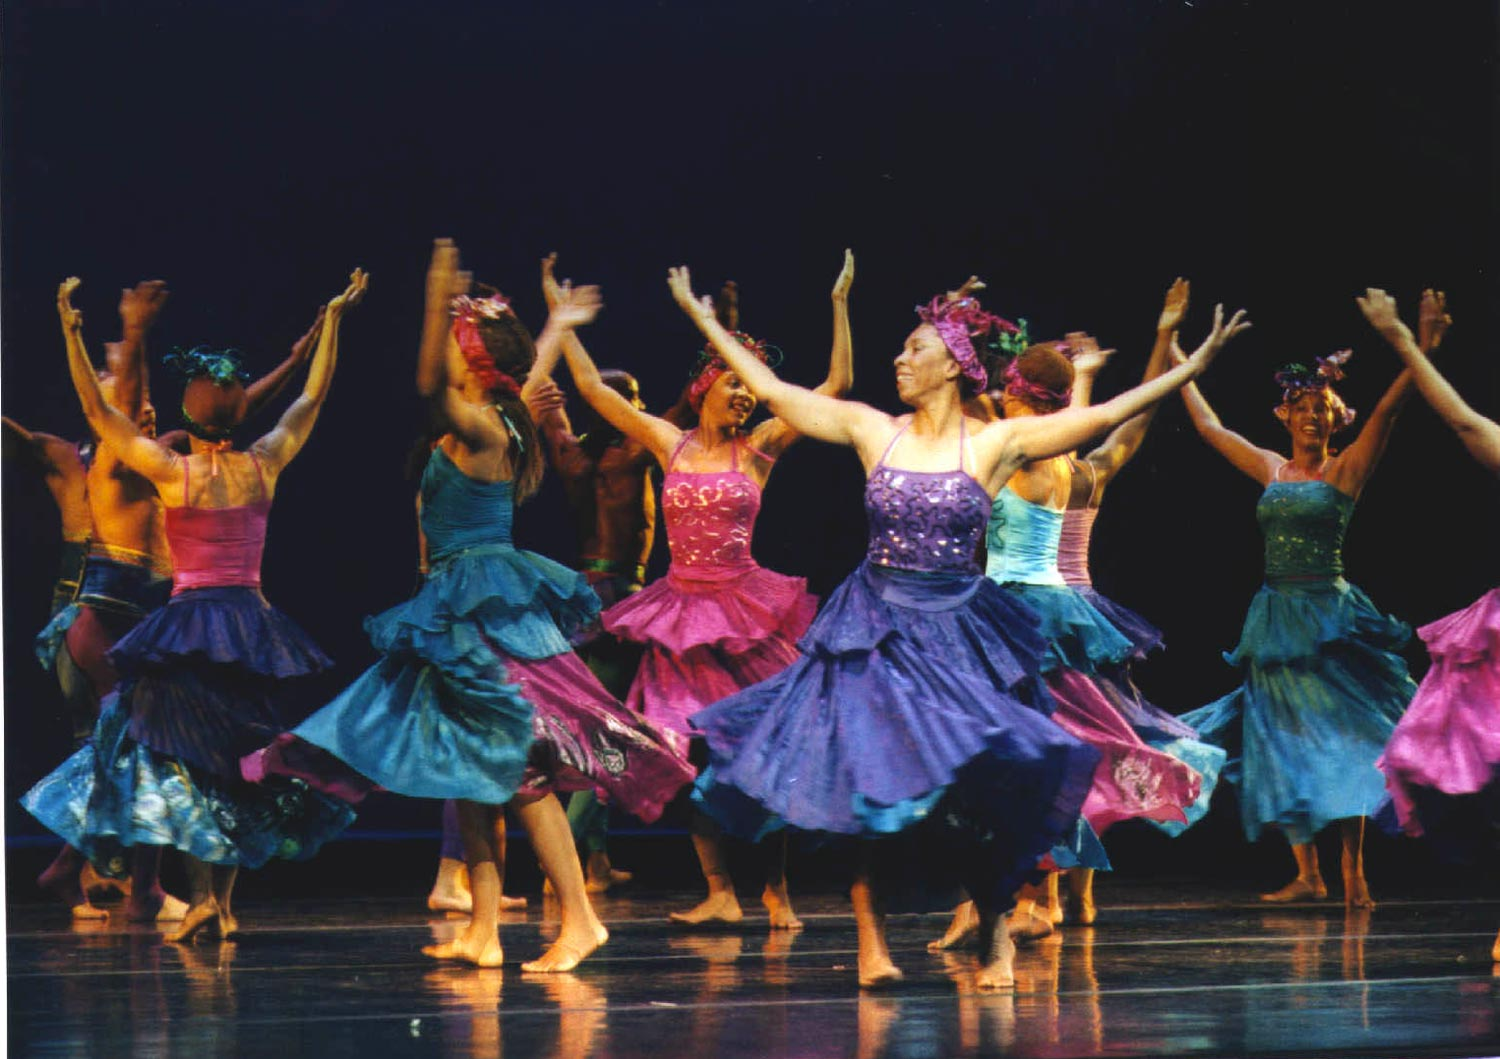 Ritual of the Sunrise, choreographed by Rex Nettleford. Photograph by Denis Valentine